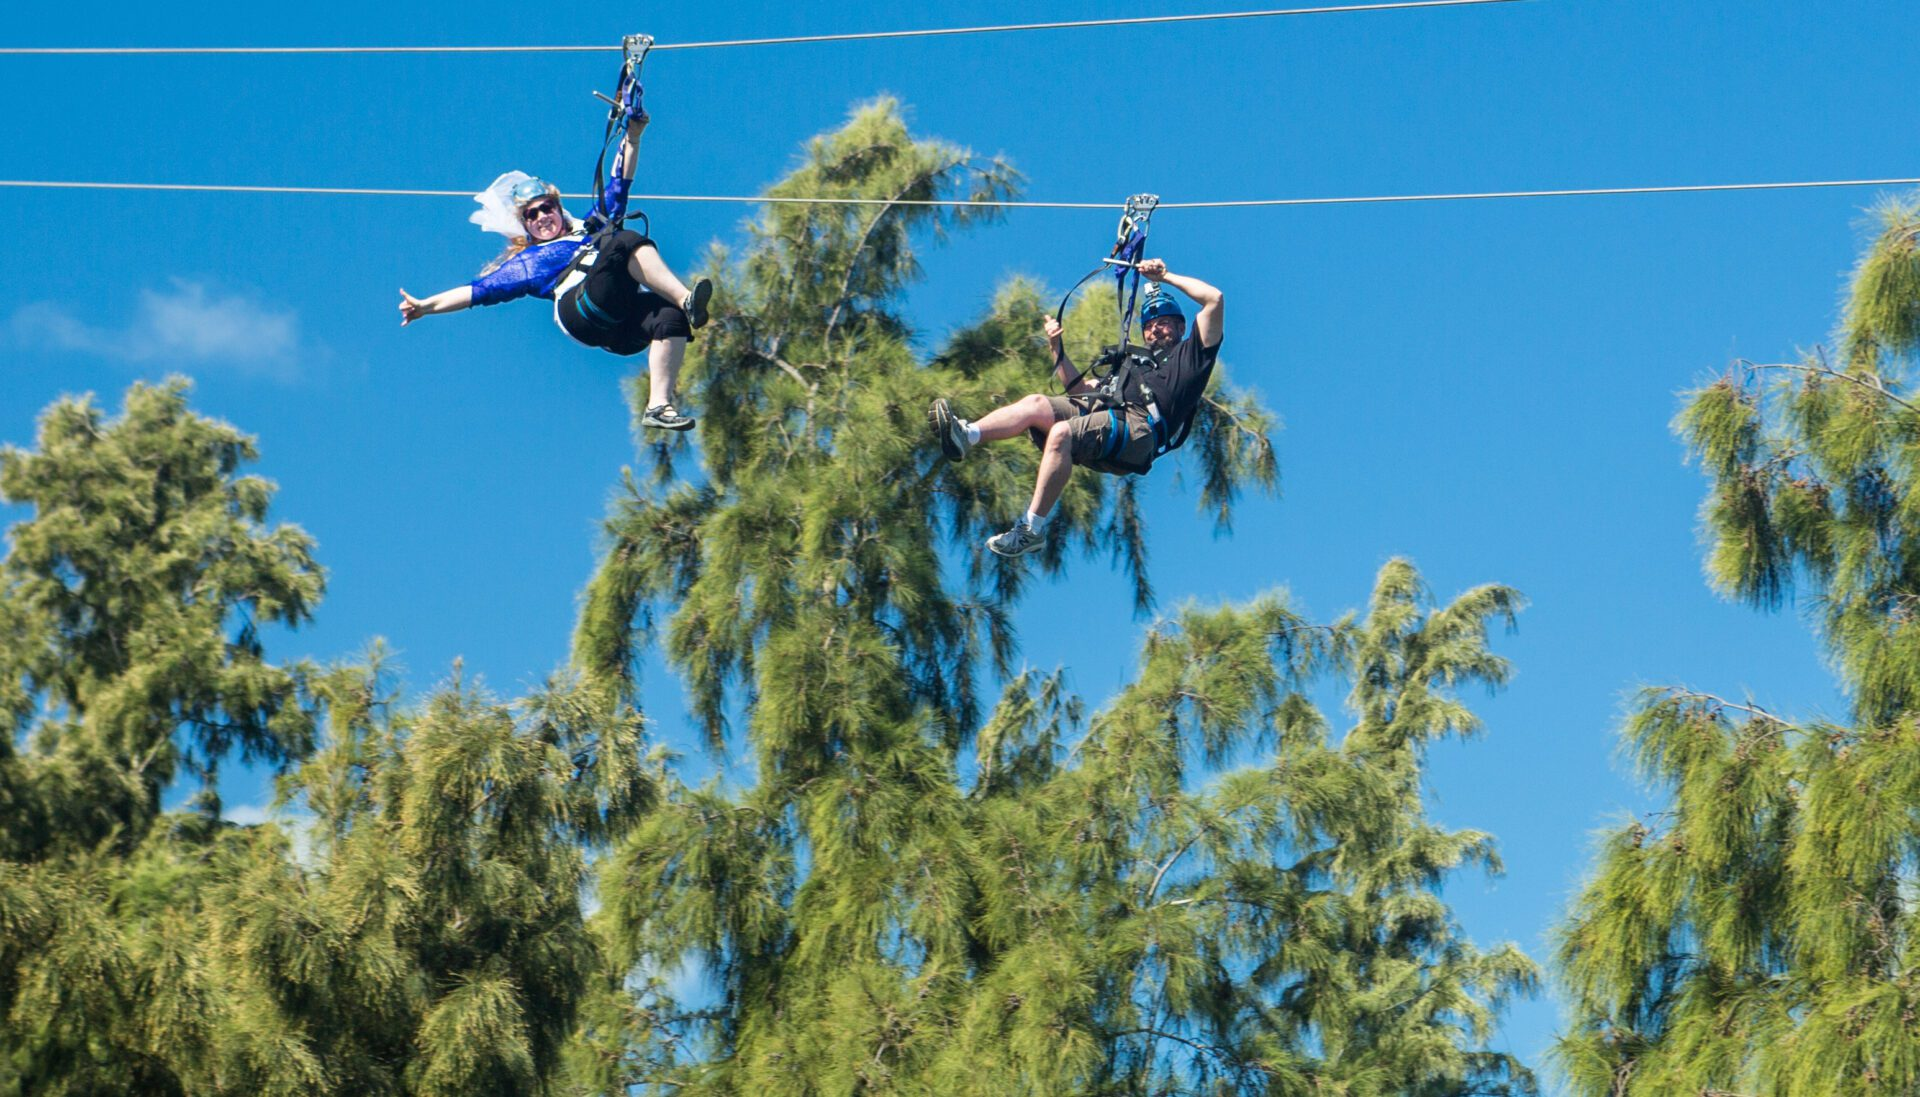 4 Reasons CLIMB Works is the Best Place to Zipline in Hawaii